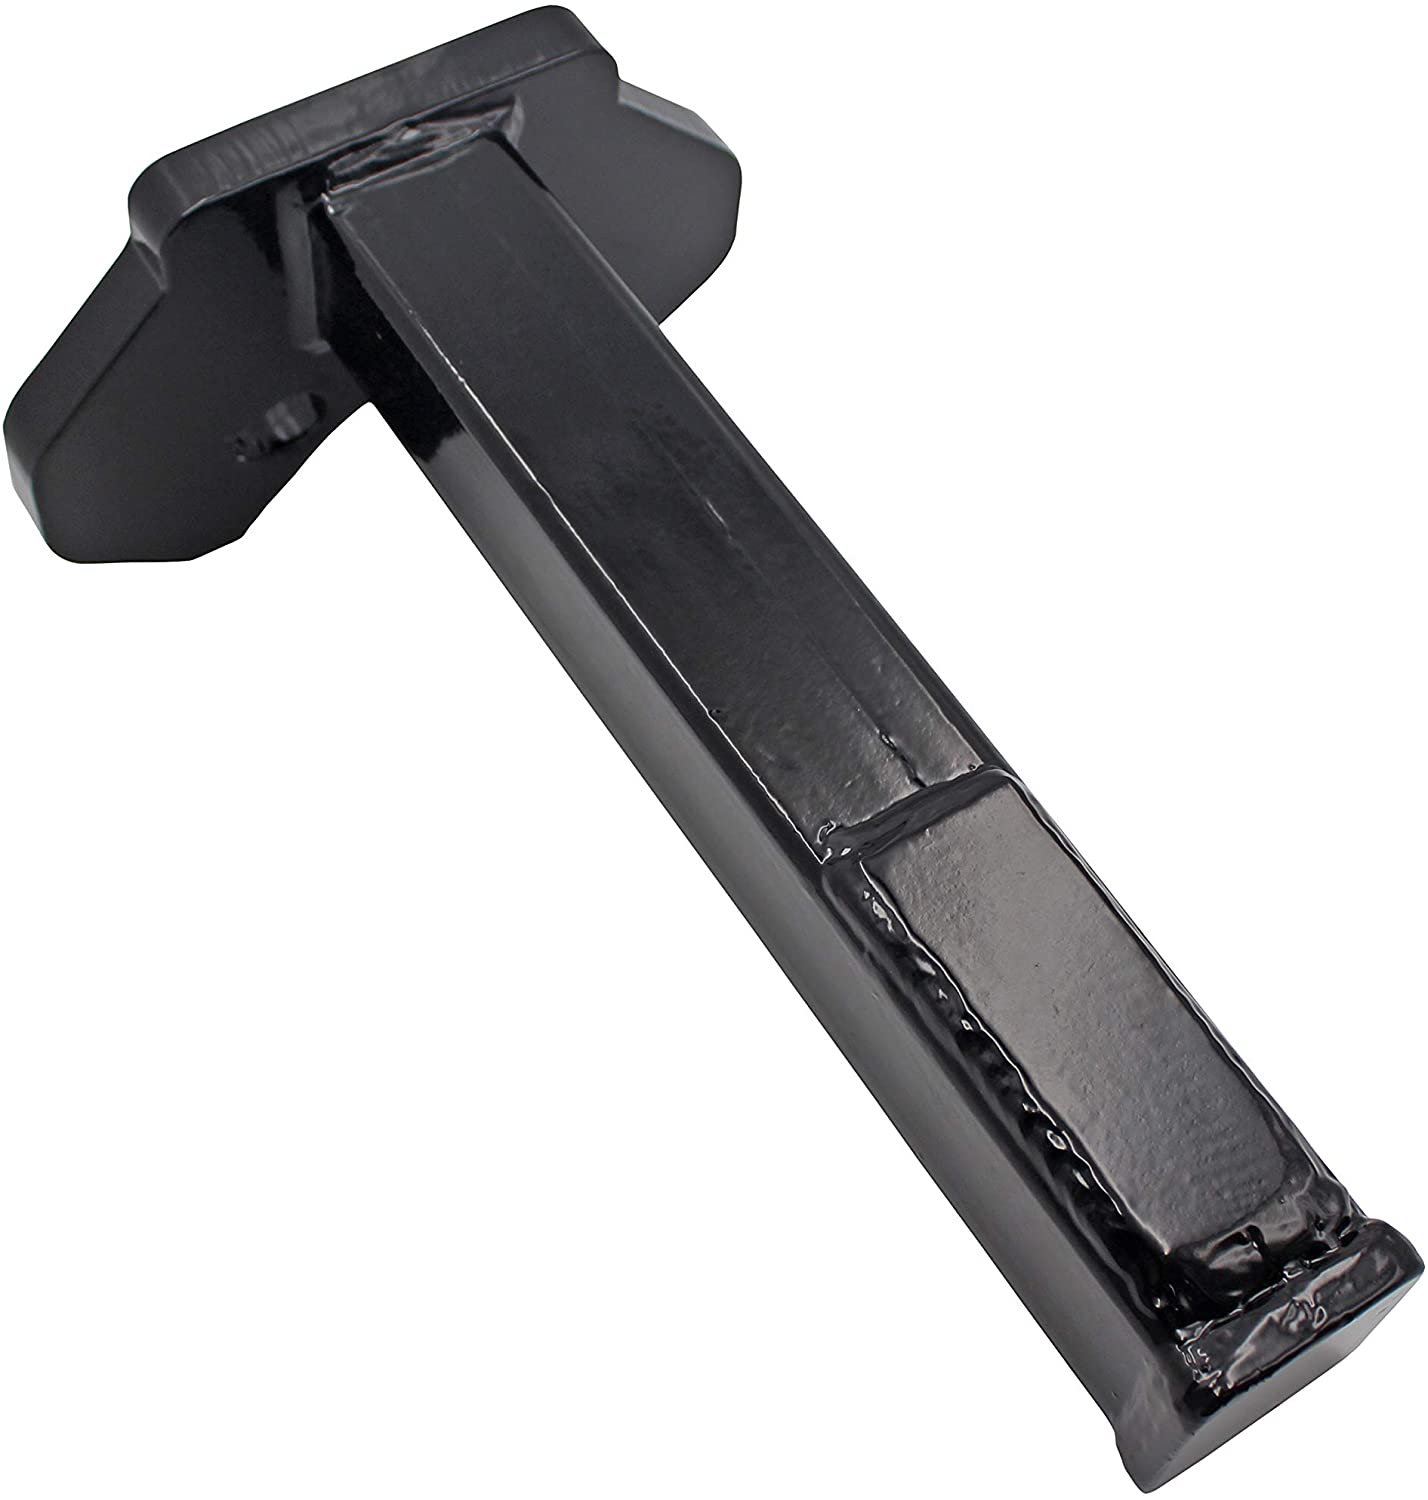 Compatible with All Axle Bolt Hubs 8629 Universal Wheel Hub Removal Tool Replace for ATD Tools 5, 6 and 8 Lug Hubs